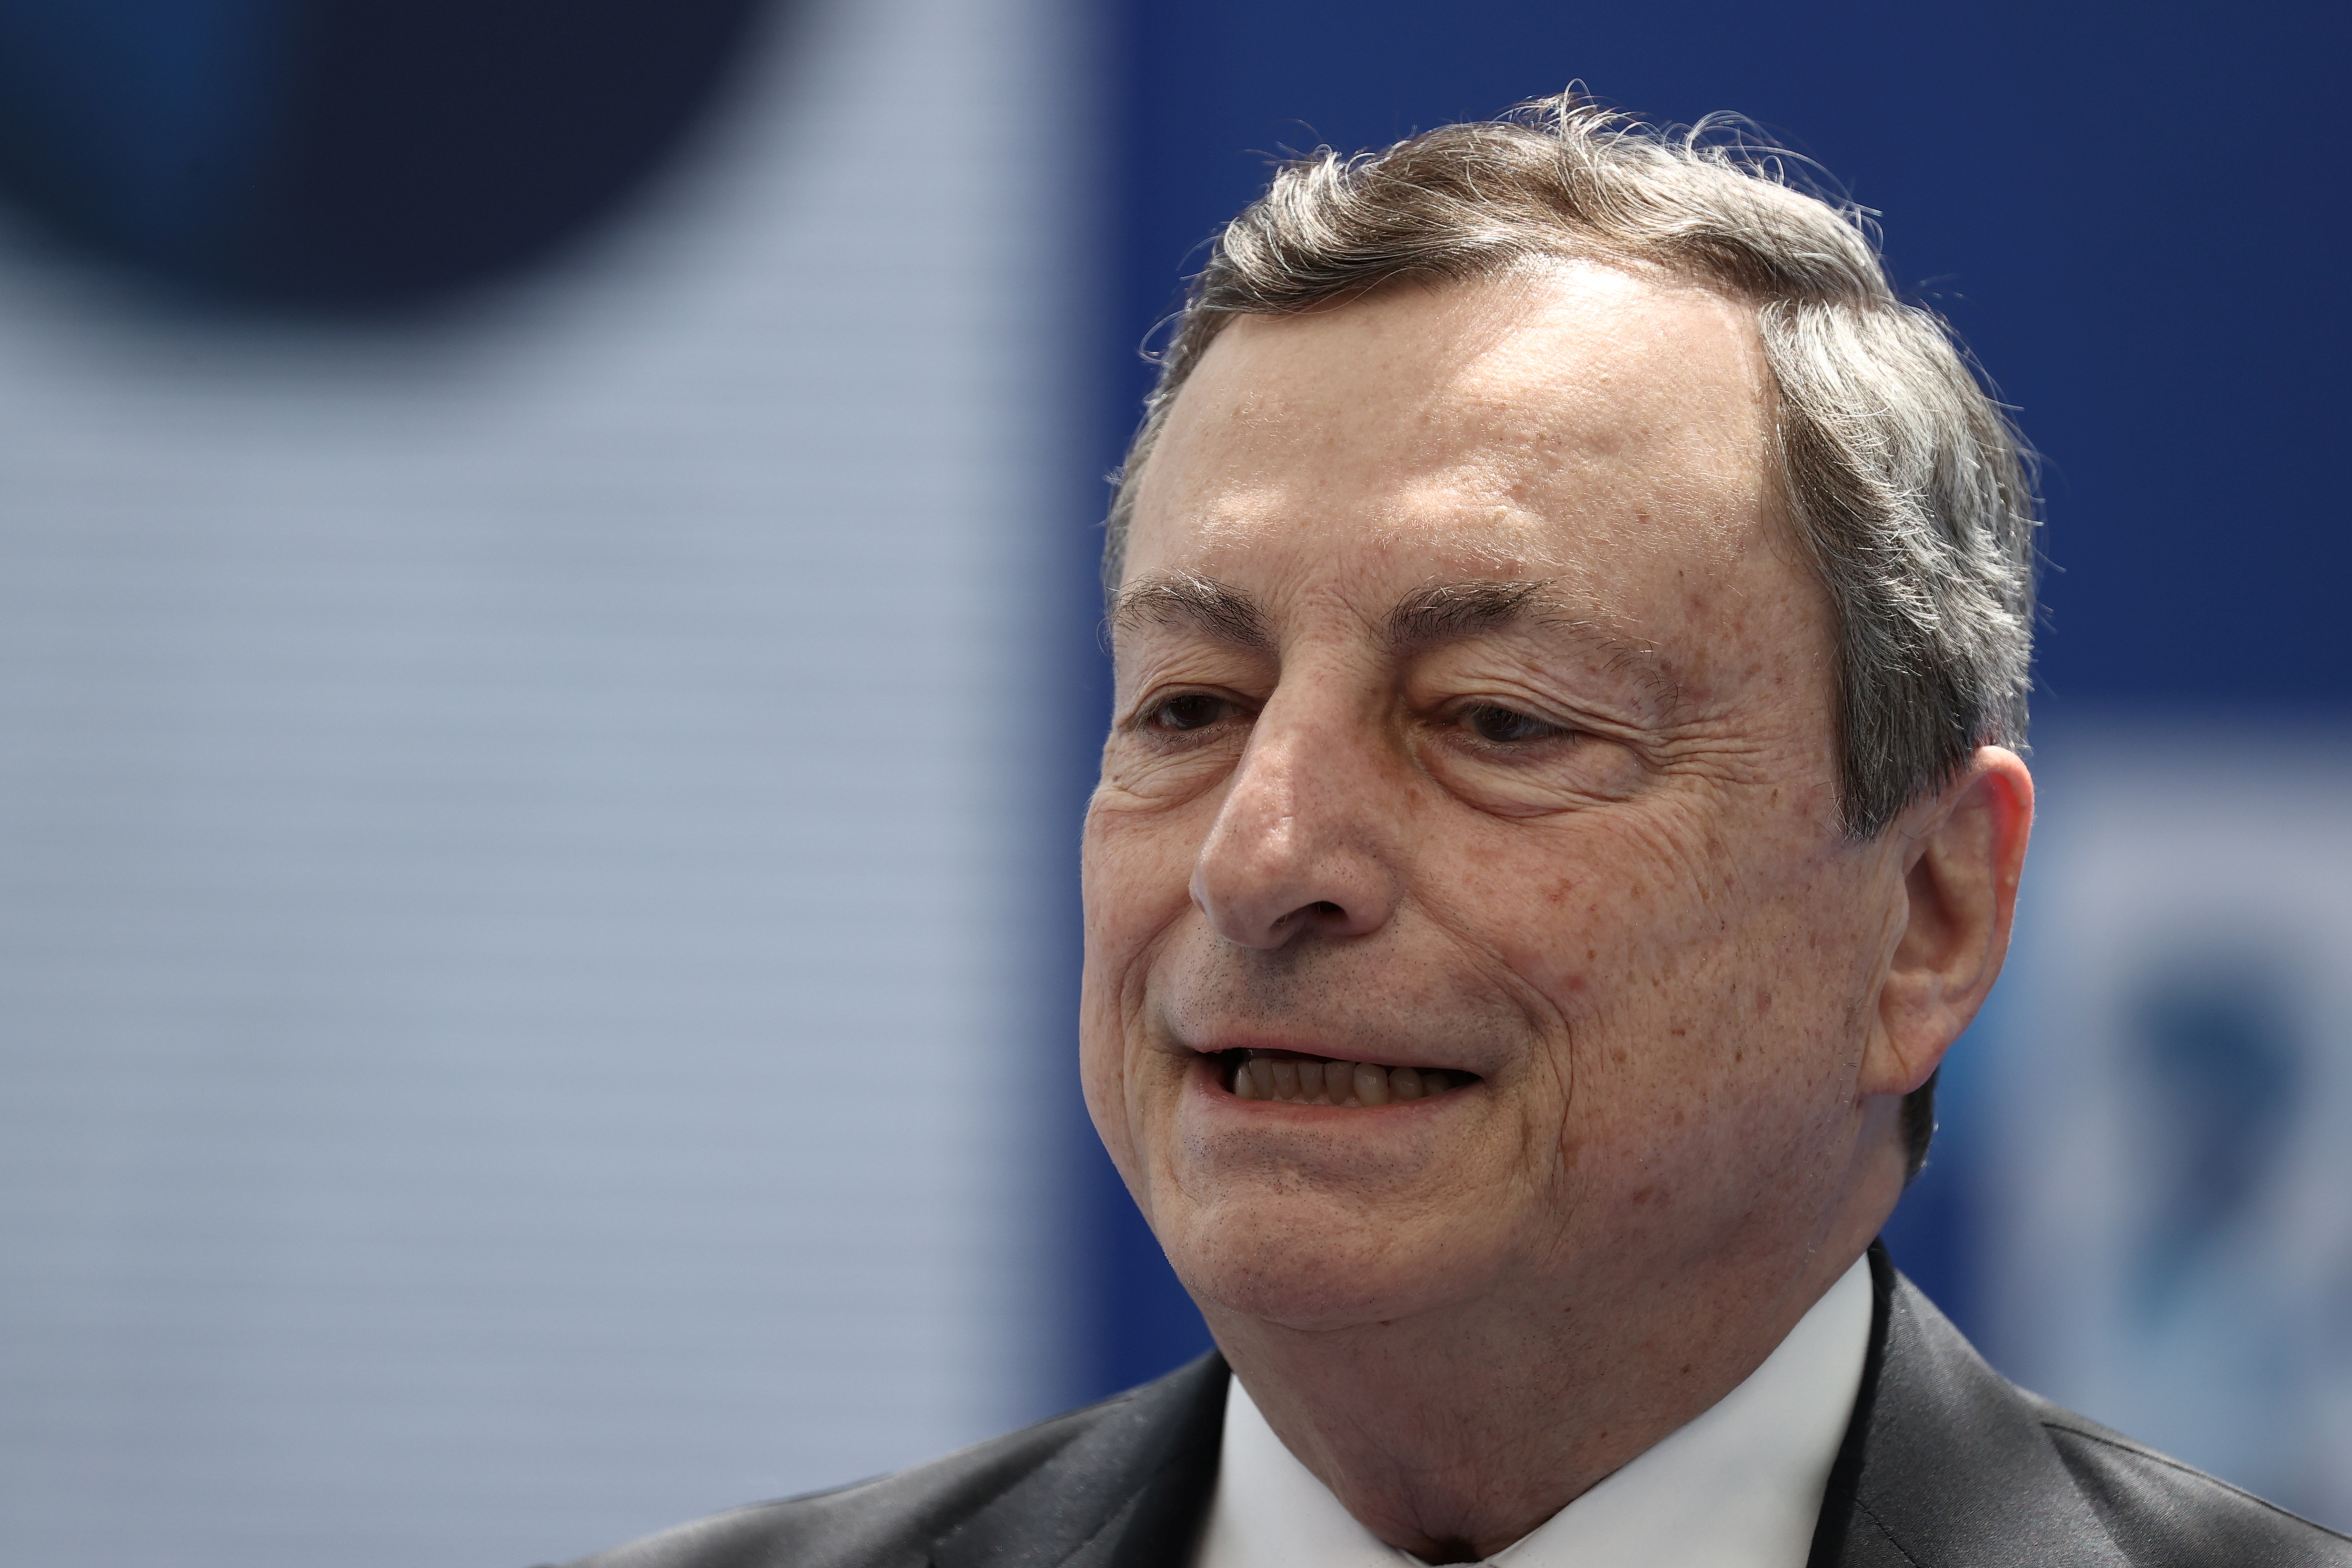 Italian Prime Minister Mario Draghi arrives for the NATO summit at the Alliance's headquarters, in Brussels, Belgium, June 14, 2021. Kenzo Tribouillard/Pool via REUTERS